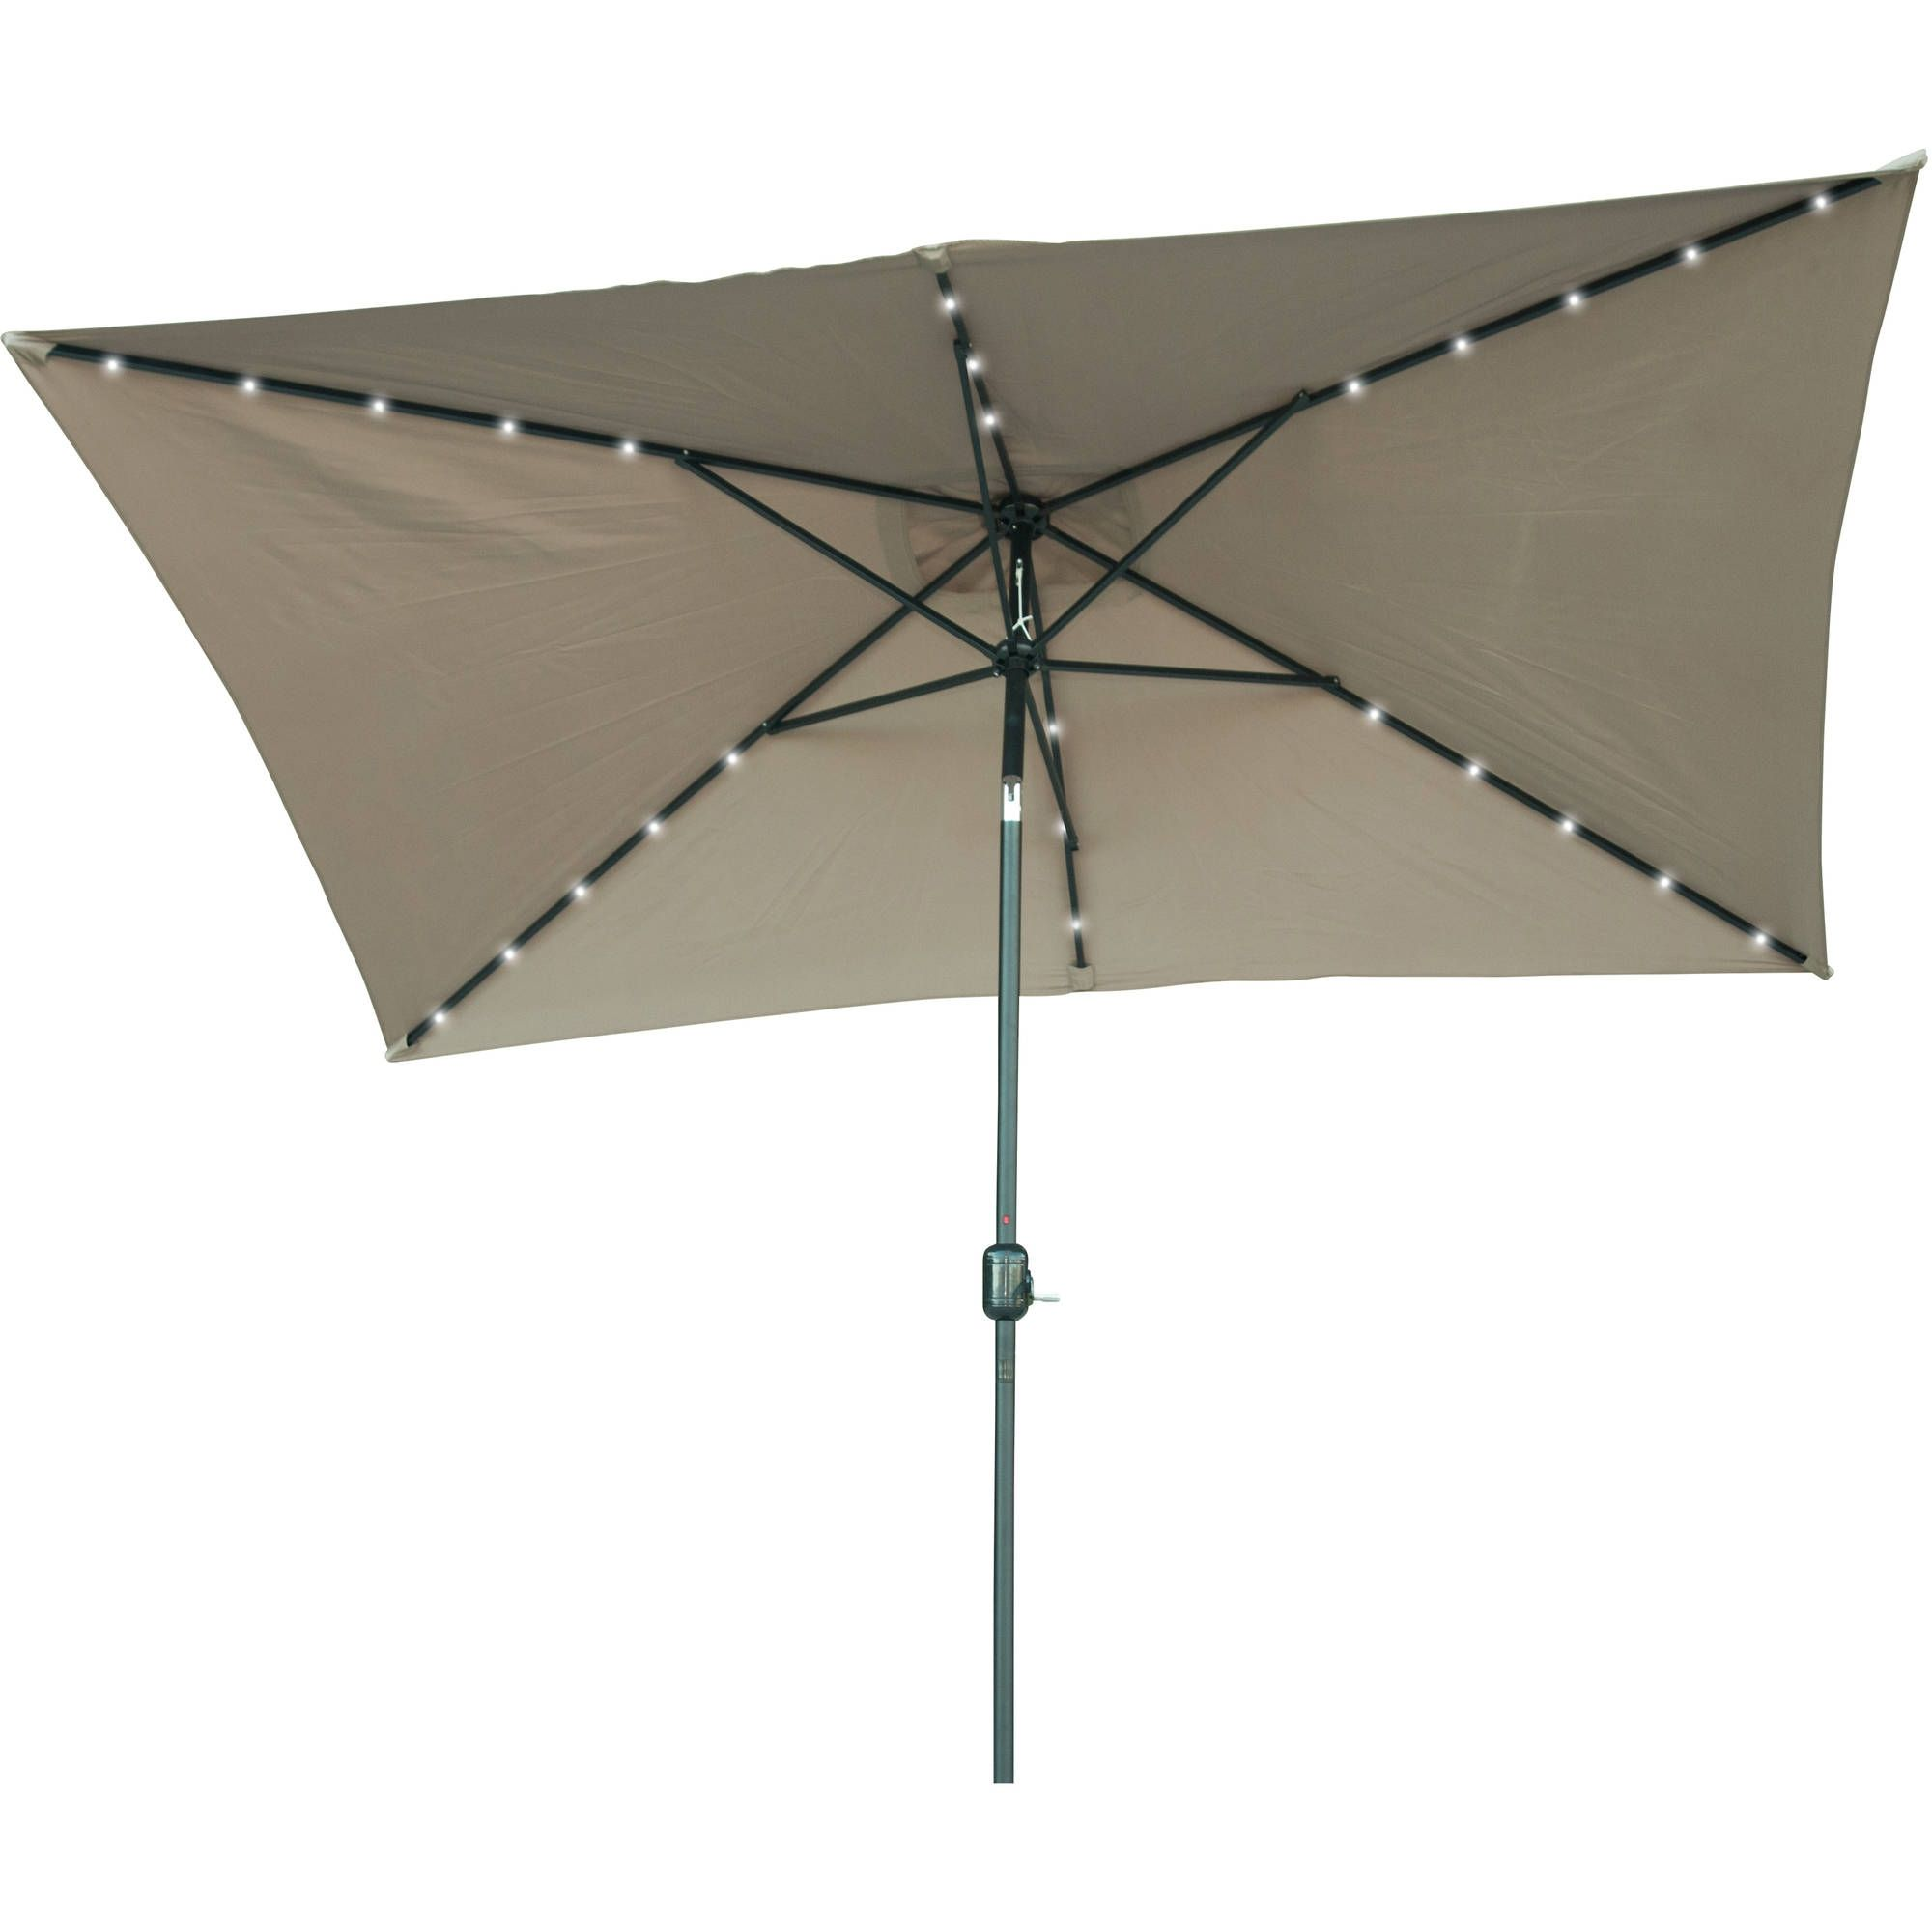 Rectangular Patio Umbrella With Solar Lights Amusing Rectangular Patio Umbrella With Solar Lights  Patio Decor Design Decoration